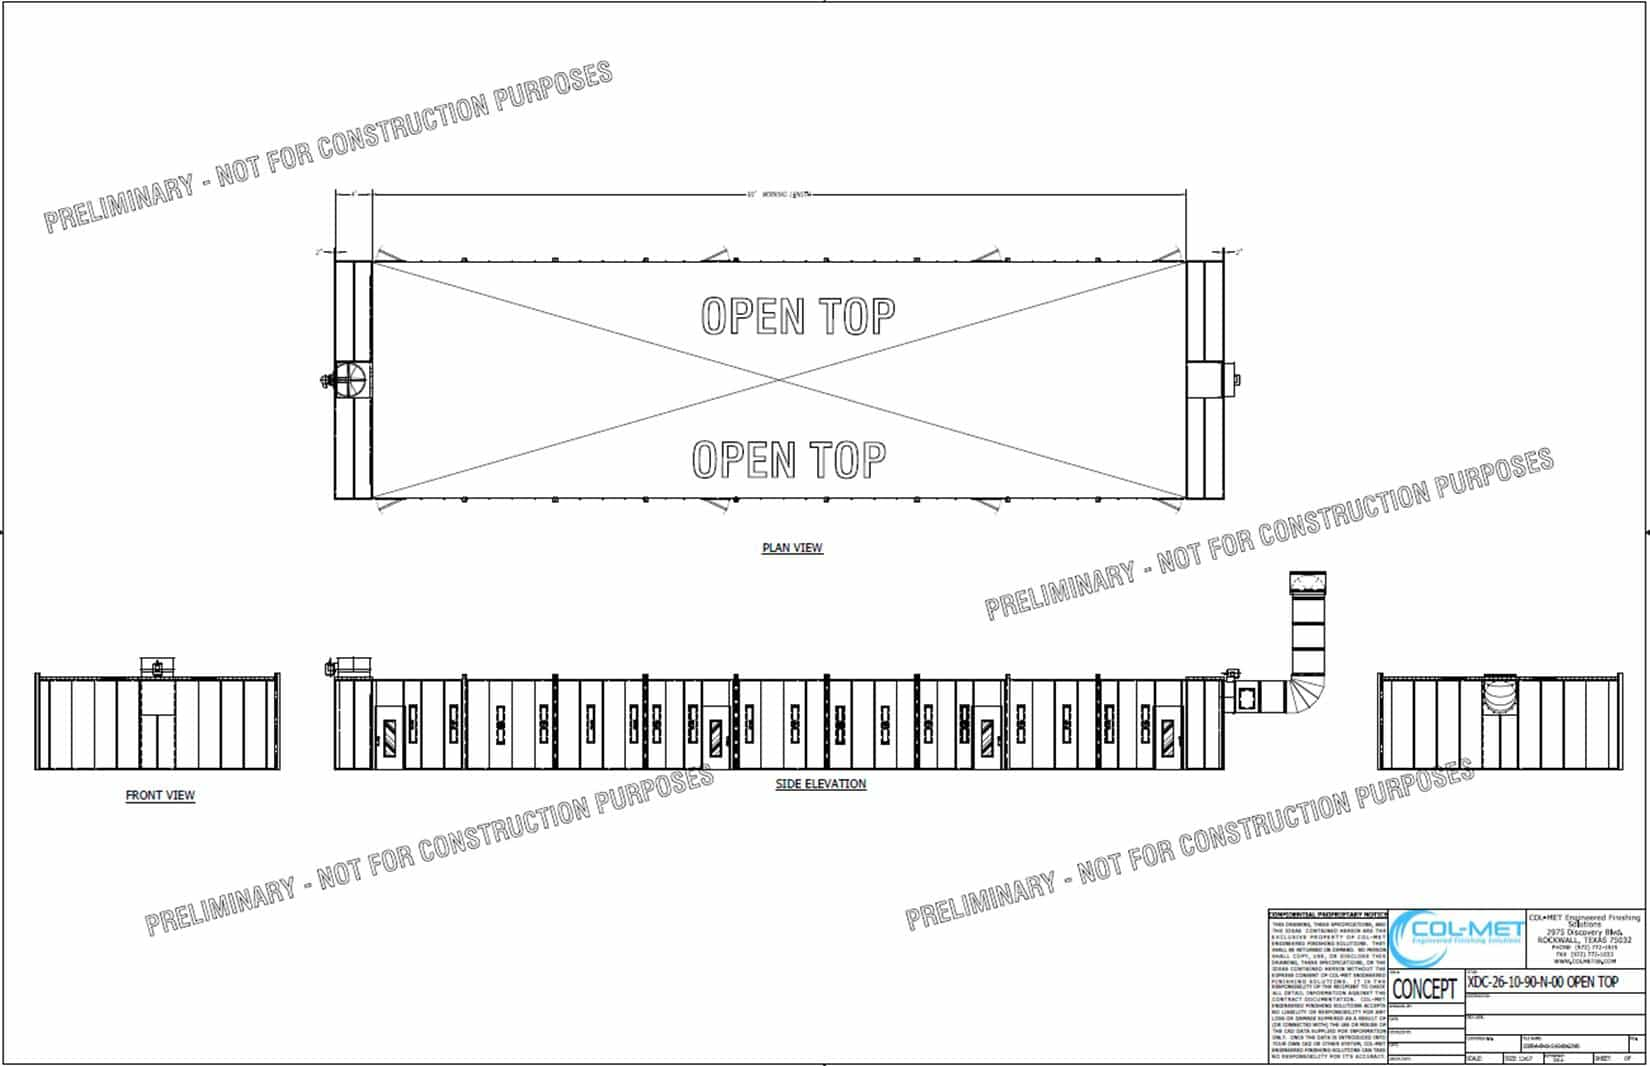 CAVCO Paint Booth CAD Drawing